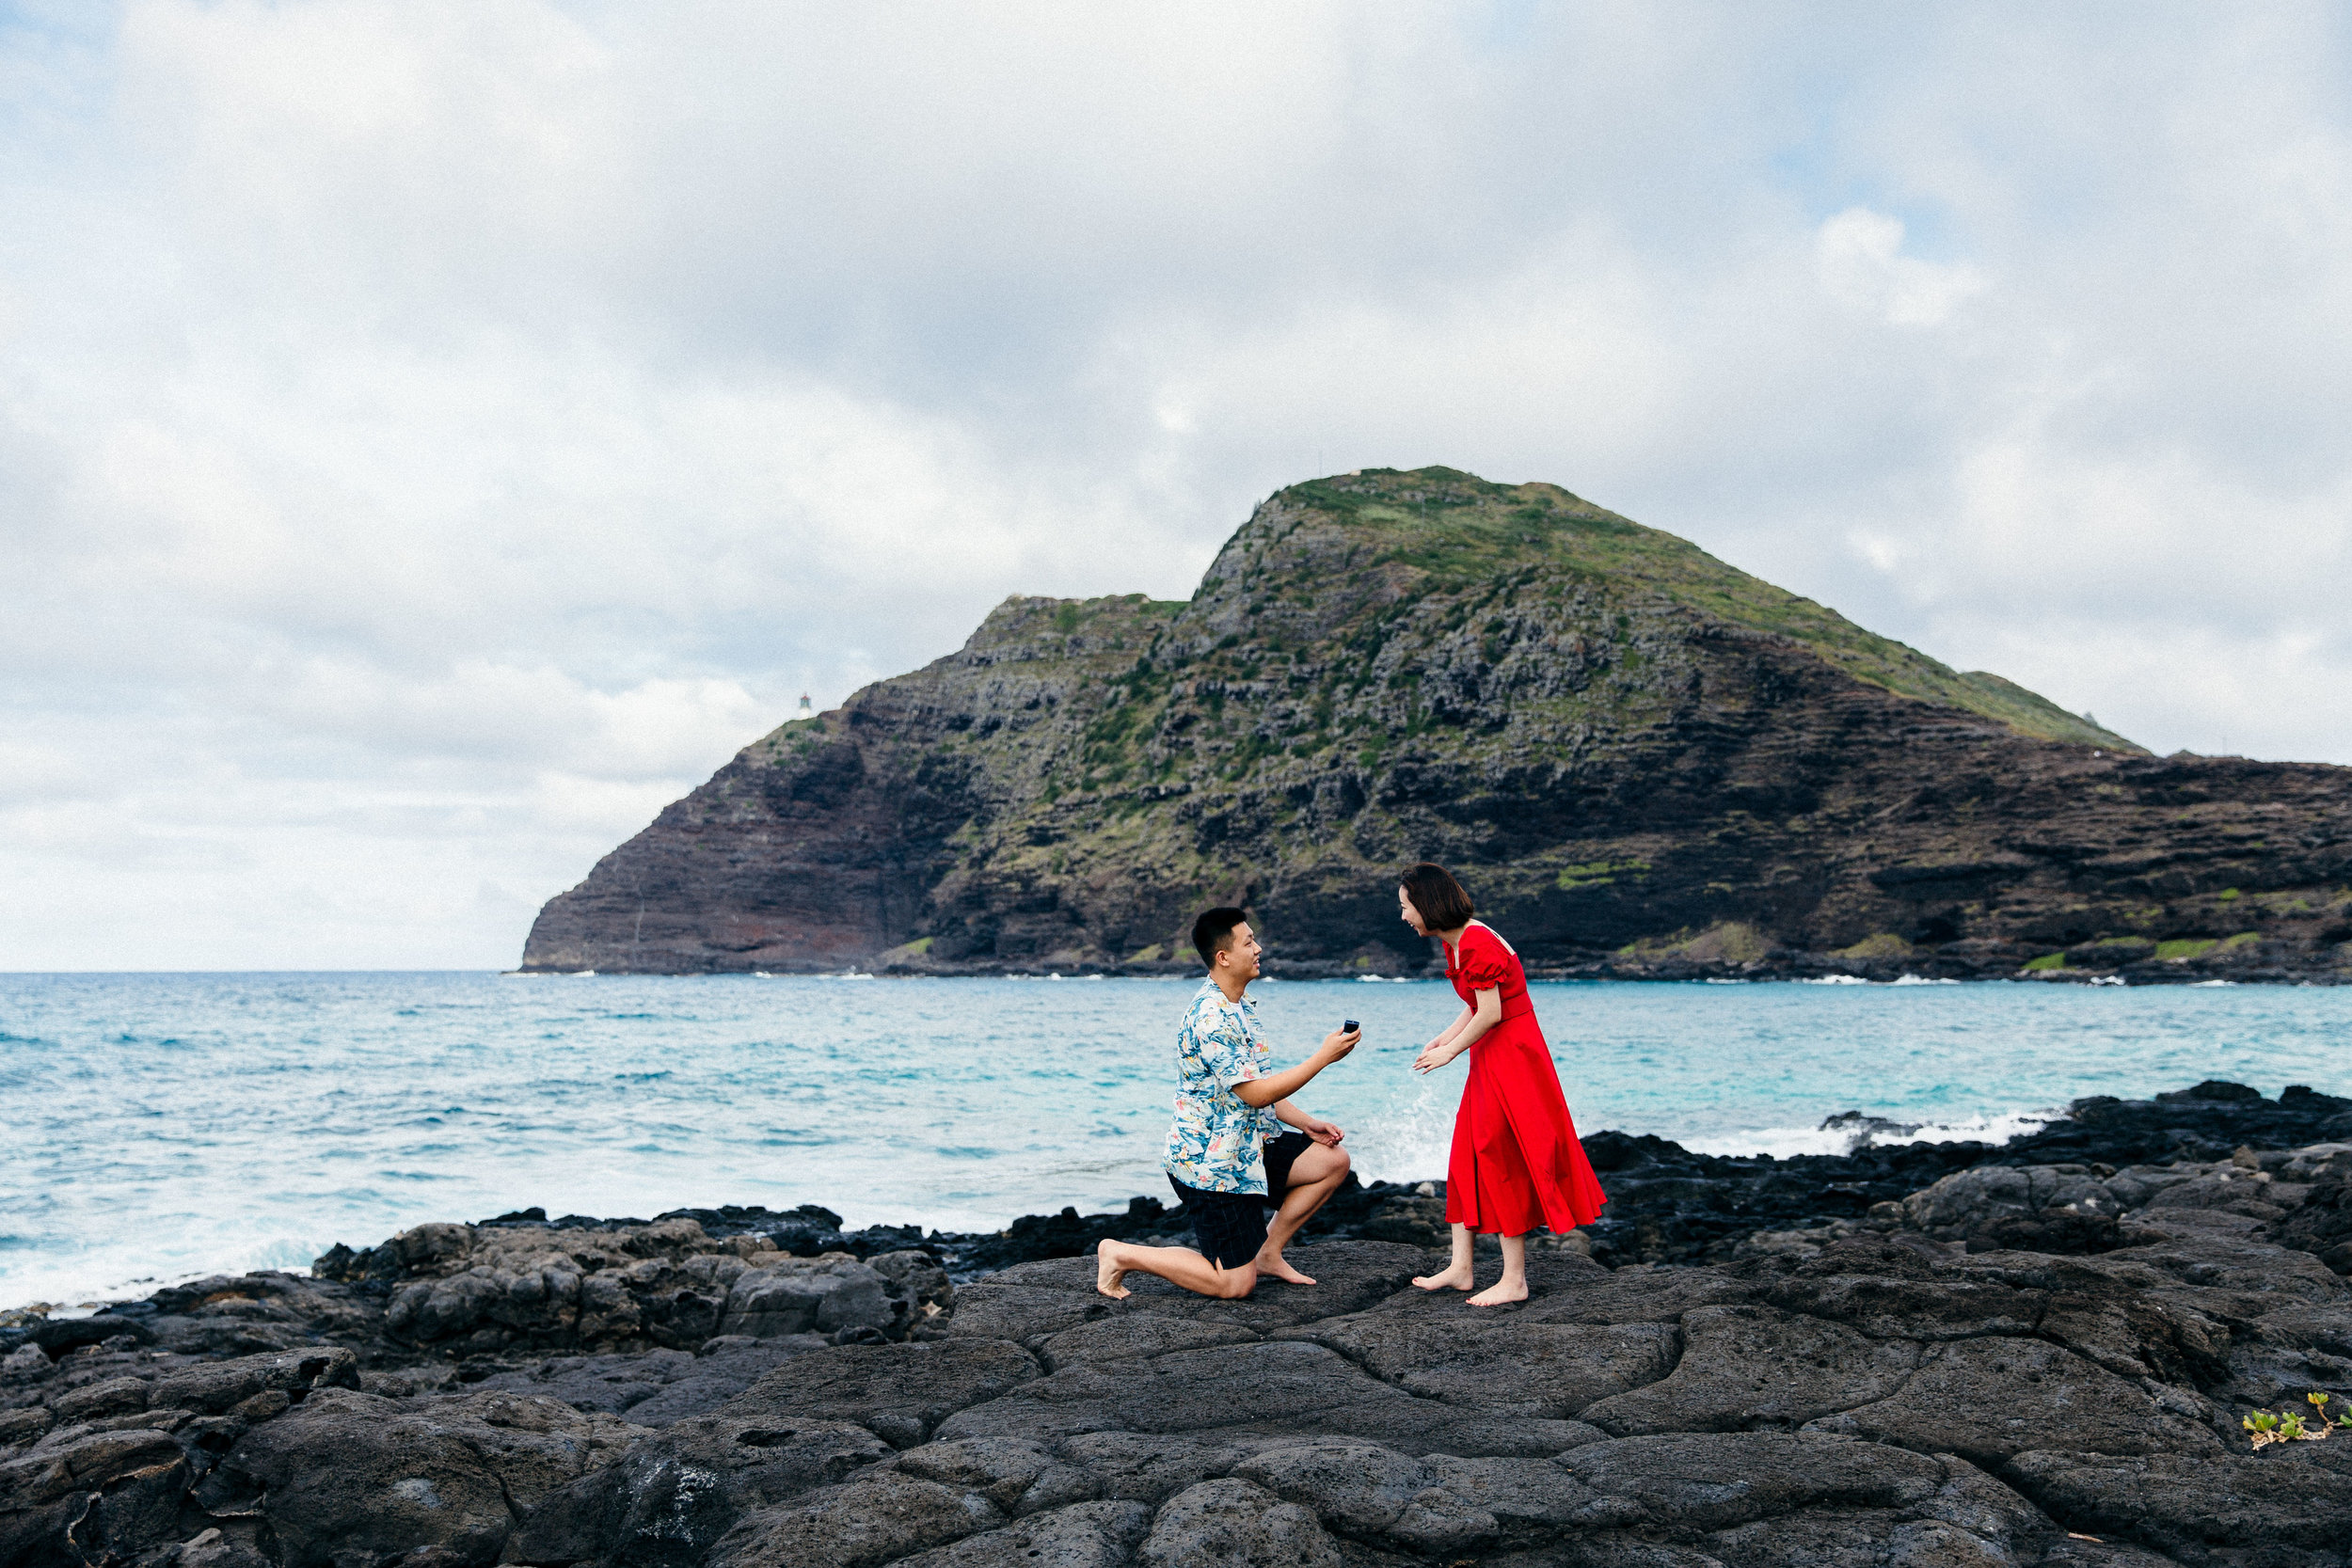 Surprise proposal at Makapuu Lighthouse - Chinese couple traveling to Hawaii during their vacation